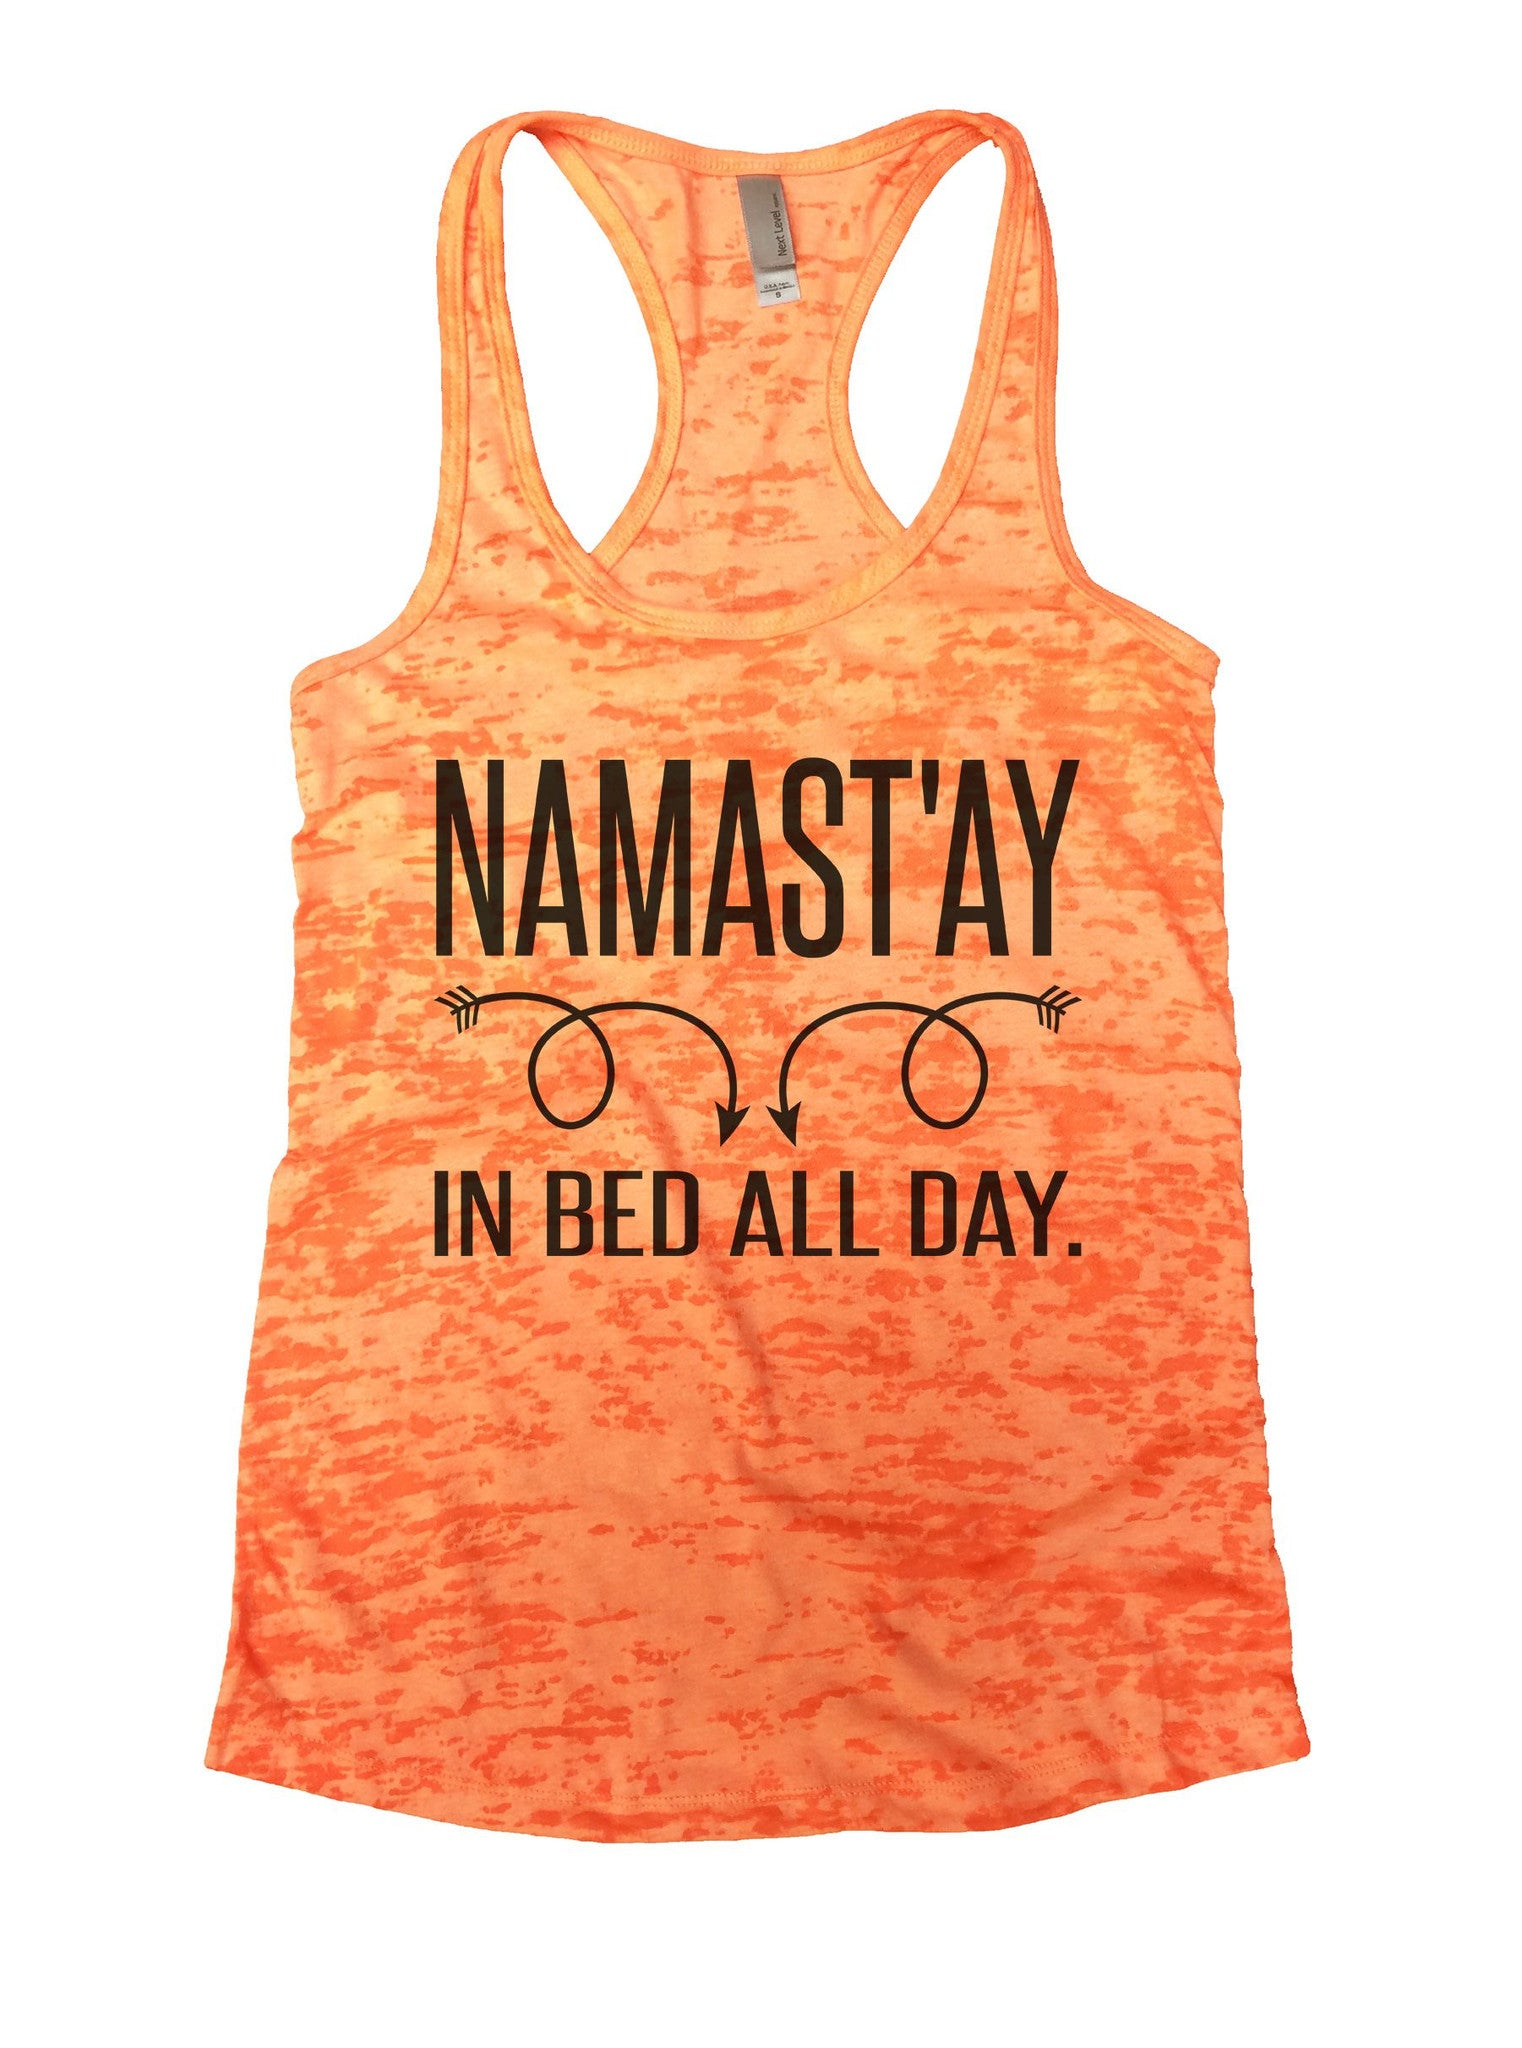 Namastay In Bed All Day Burnout Tank Top By Funny Treadz - 919 - Funny Shirts Tank Tops Burnouts and Triblends  - 3